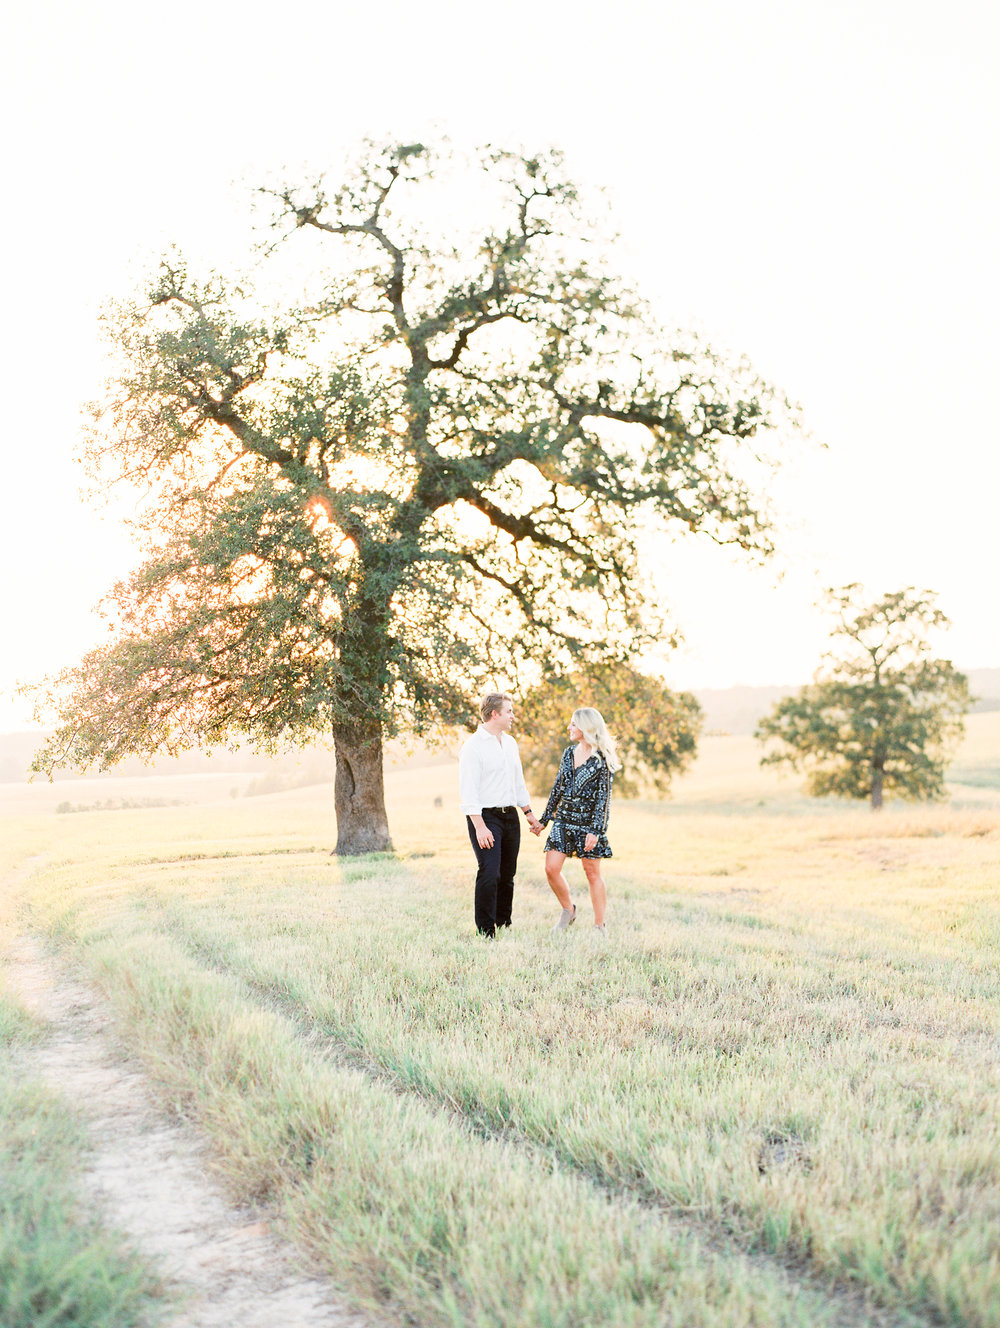 Lauren+John+Engaged+TX-54.jpg